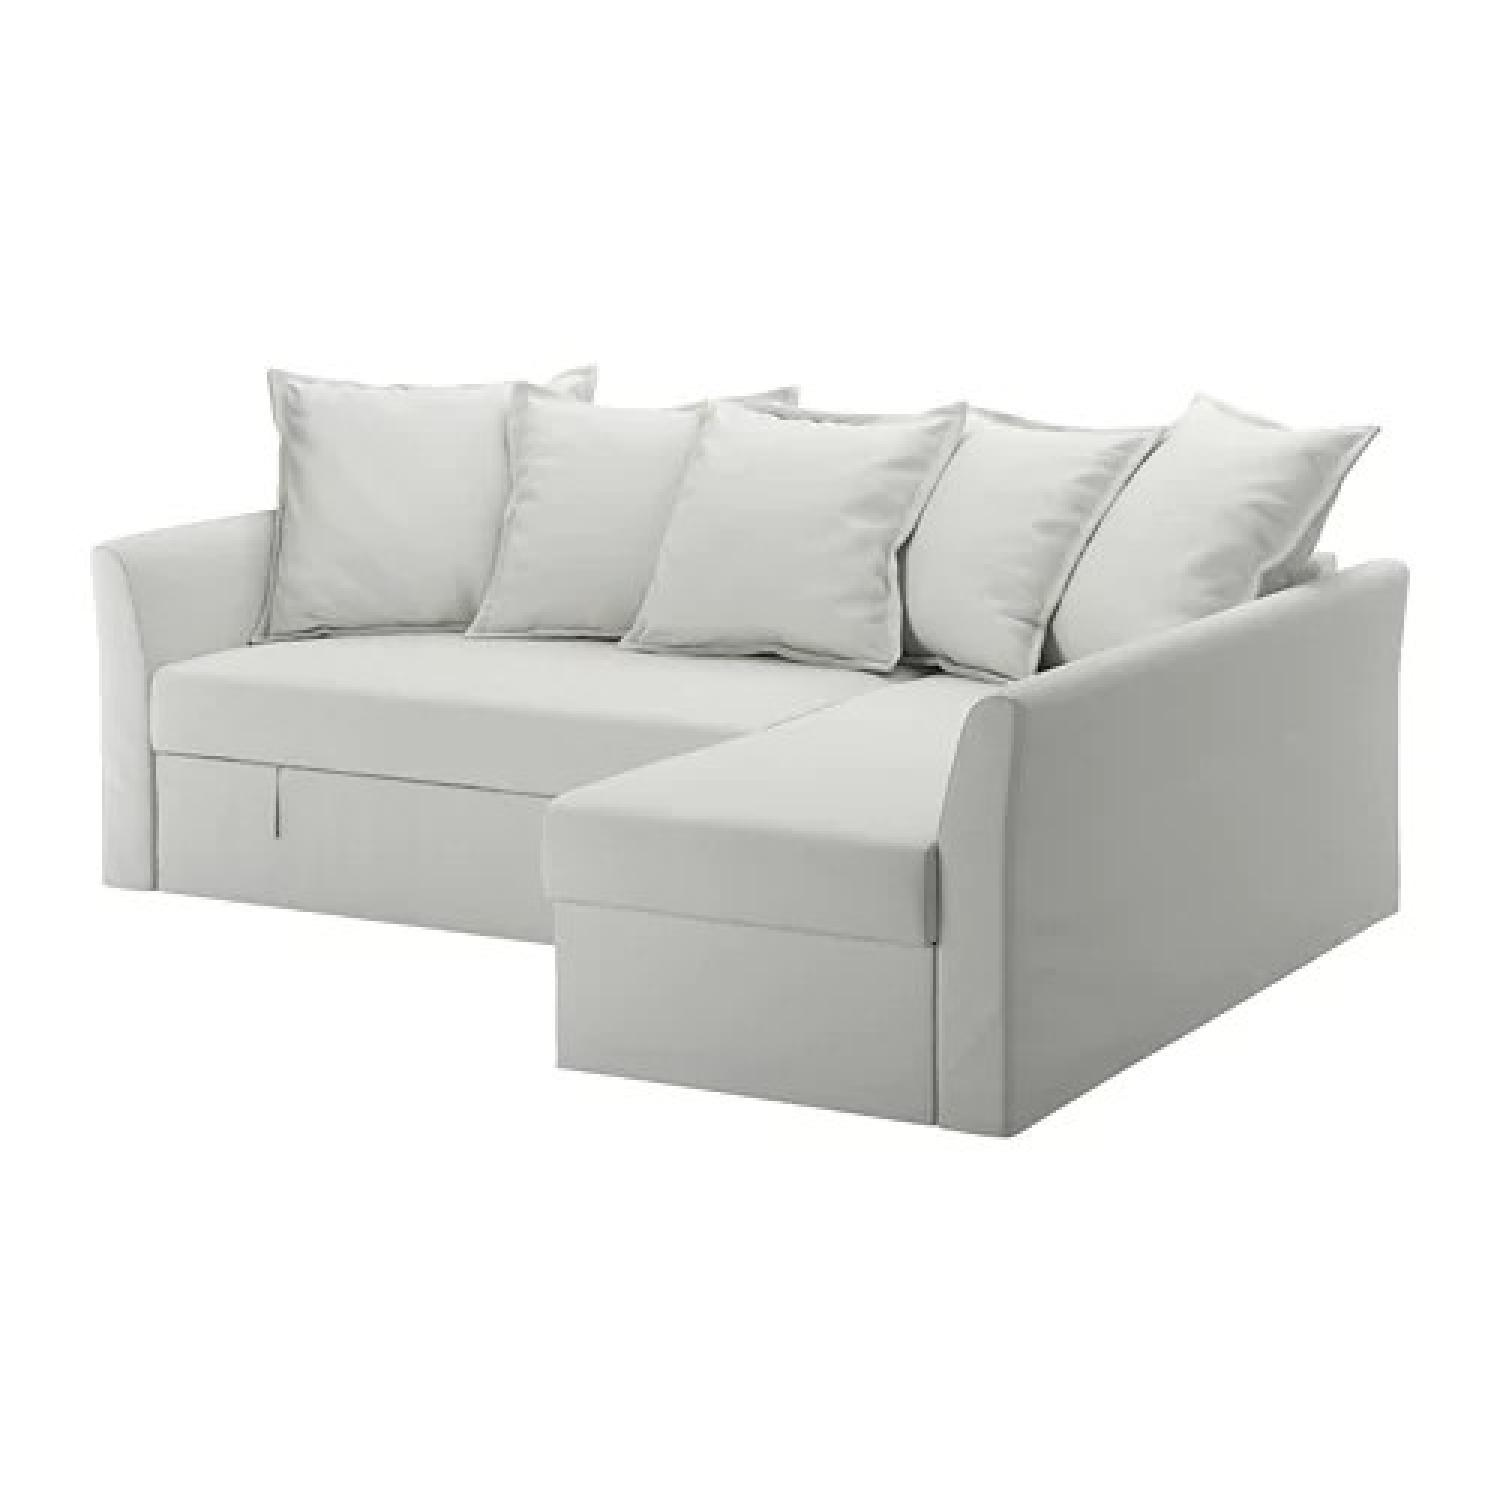 home products sectionals microfiber cindy sleepers crawford contemporary indigo sectional place pc sleeper madison